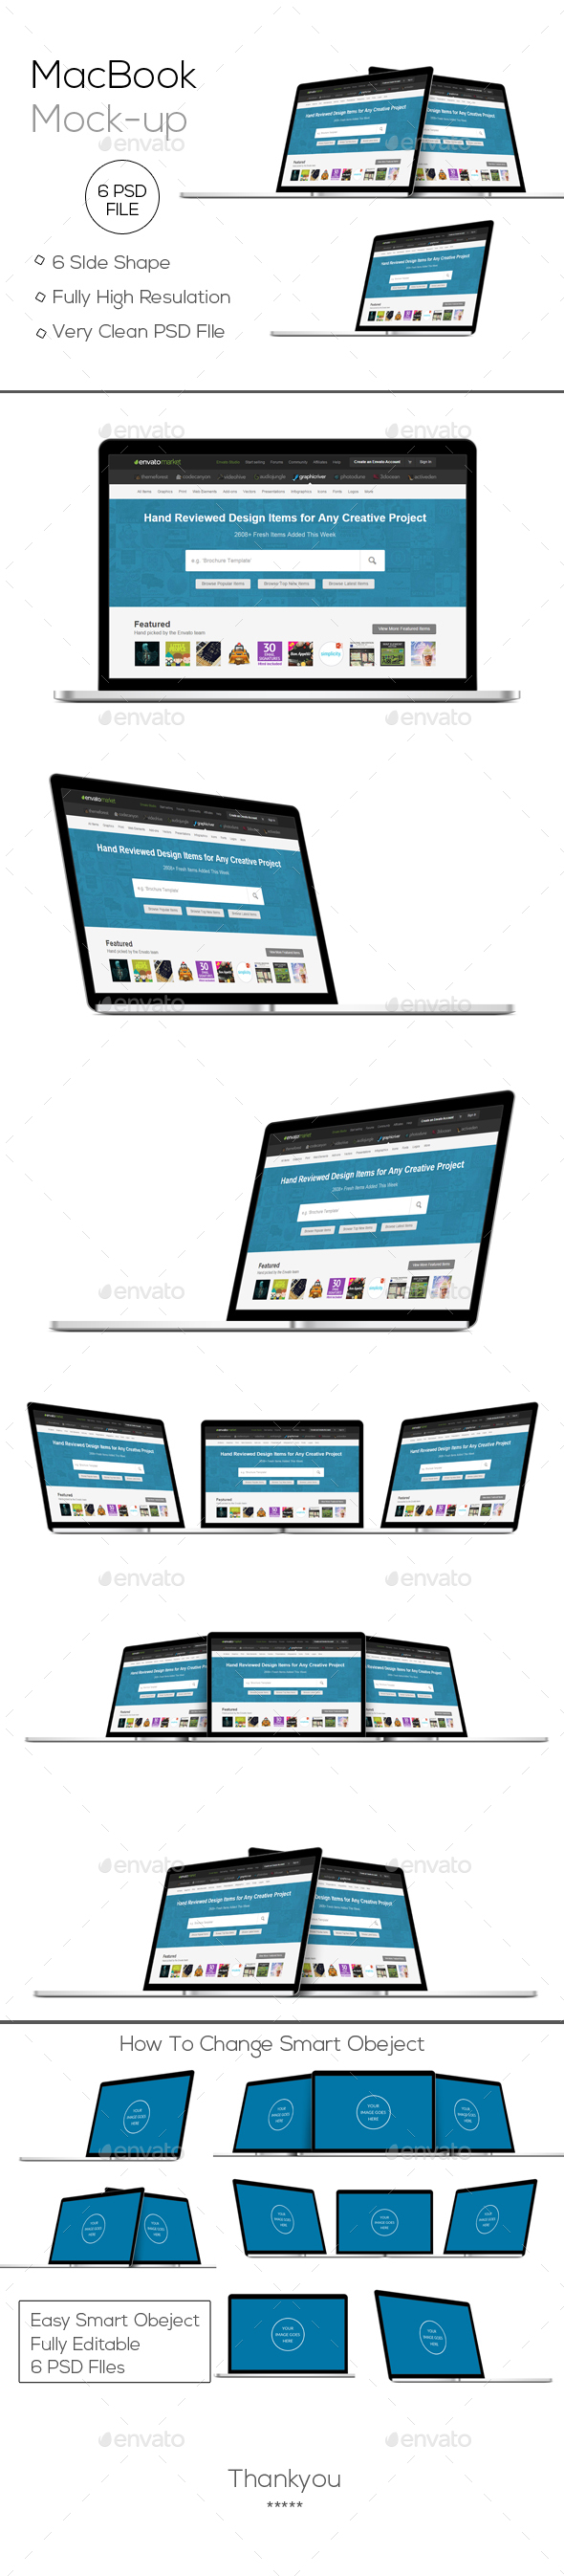 Macbook Mockup - Laptop Displays